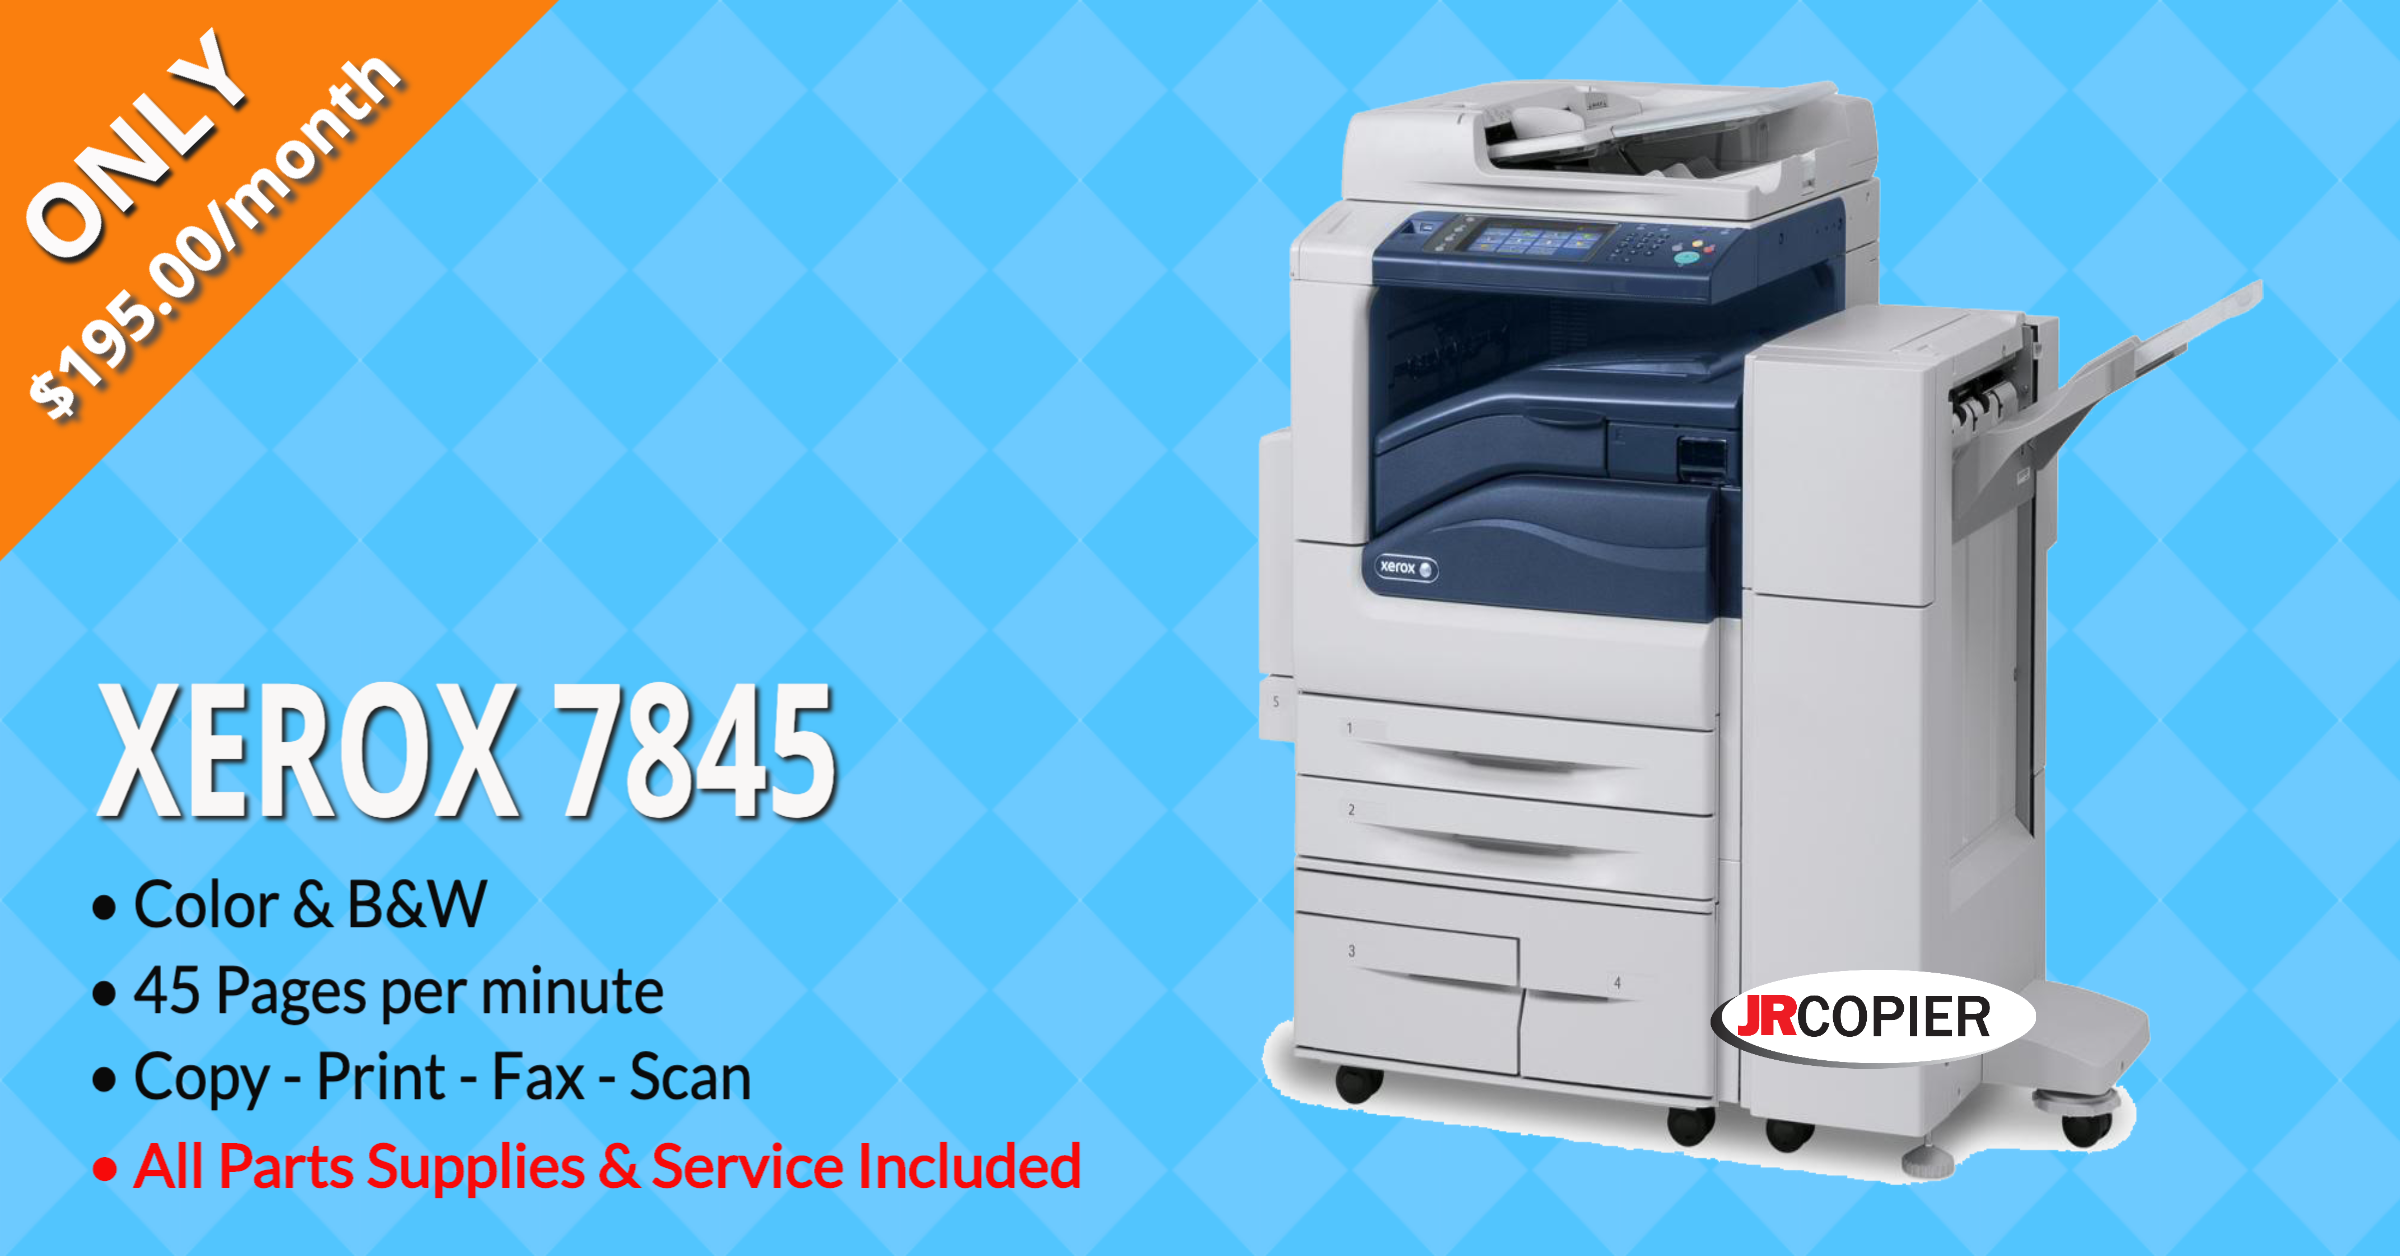 Printer Leasing Company 50595